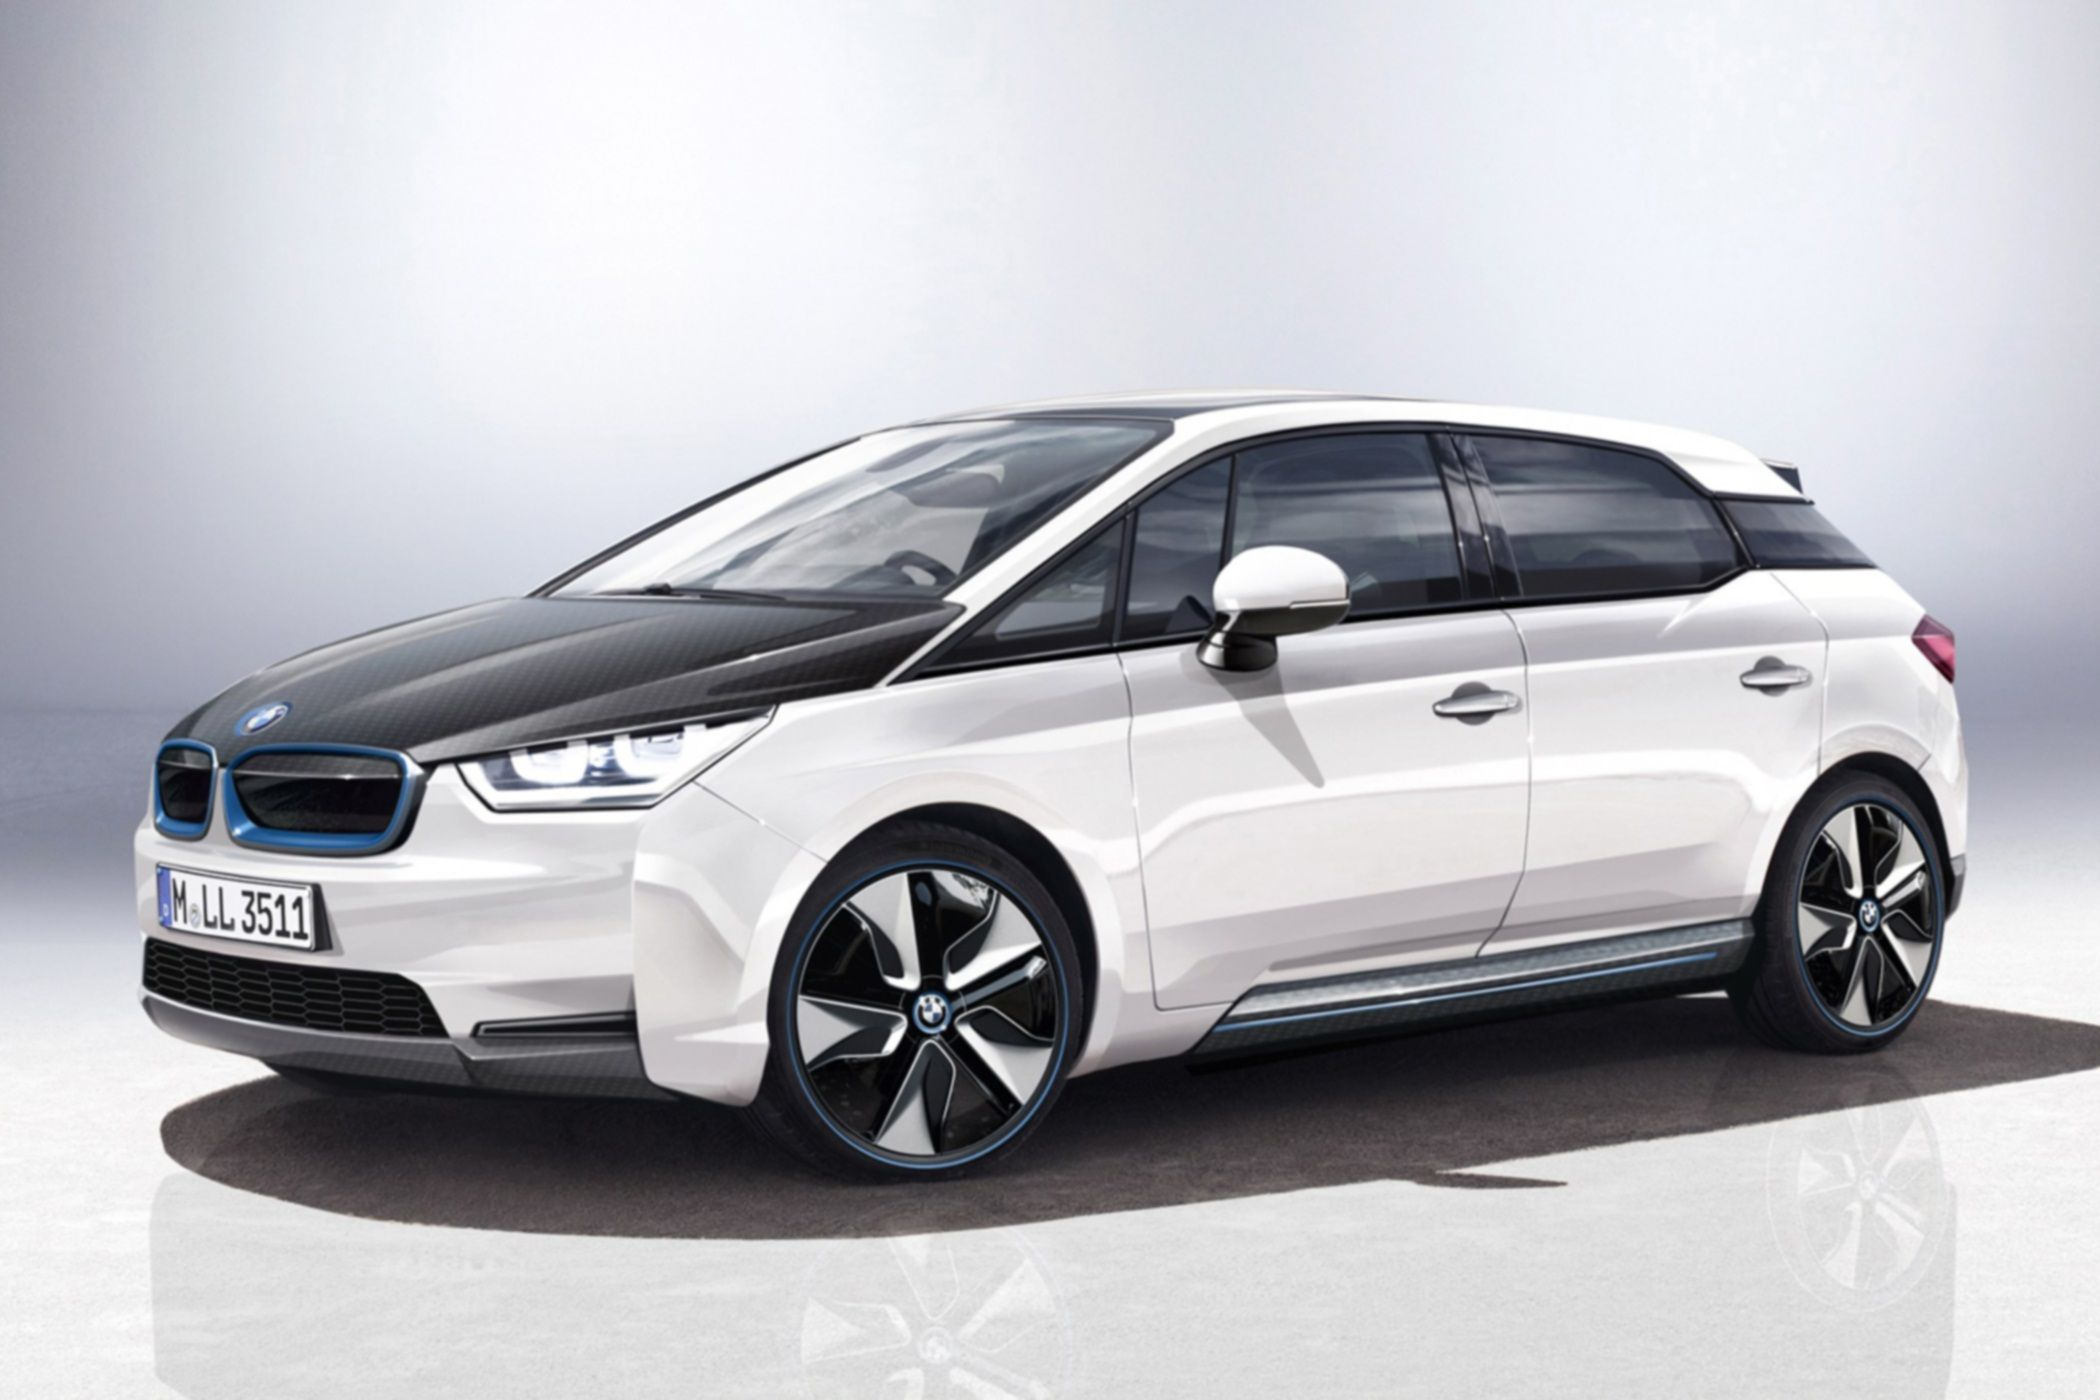 BMW i5. Prototype Electric Midsize Car.  Electric Version of the BWM 5 series.  Available in 2016